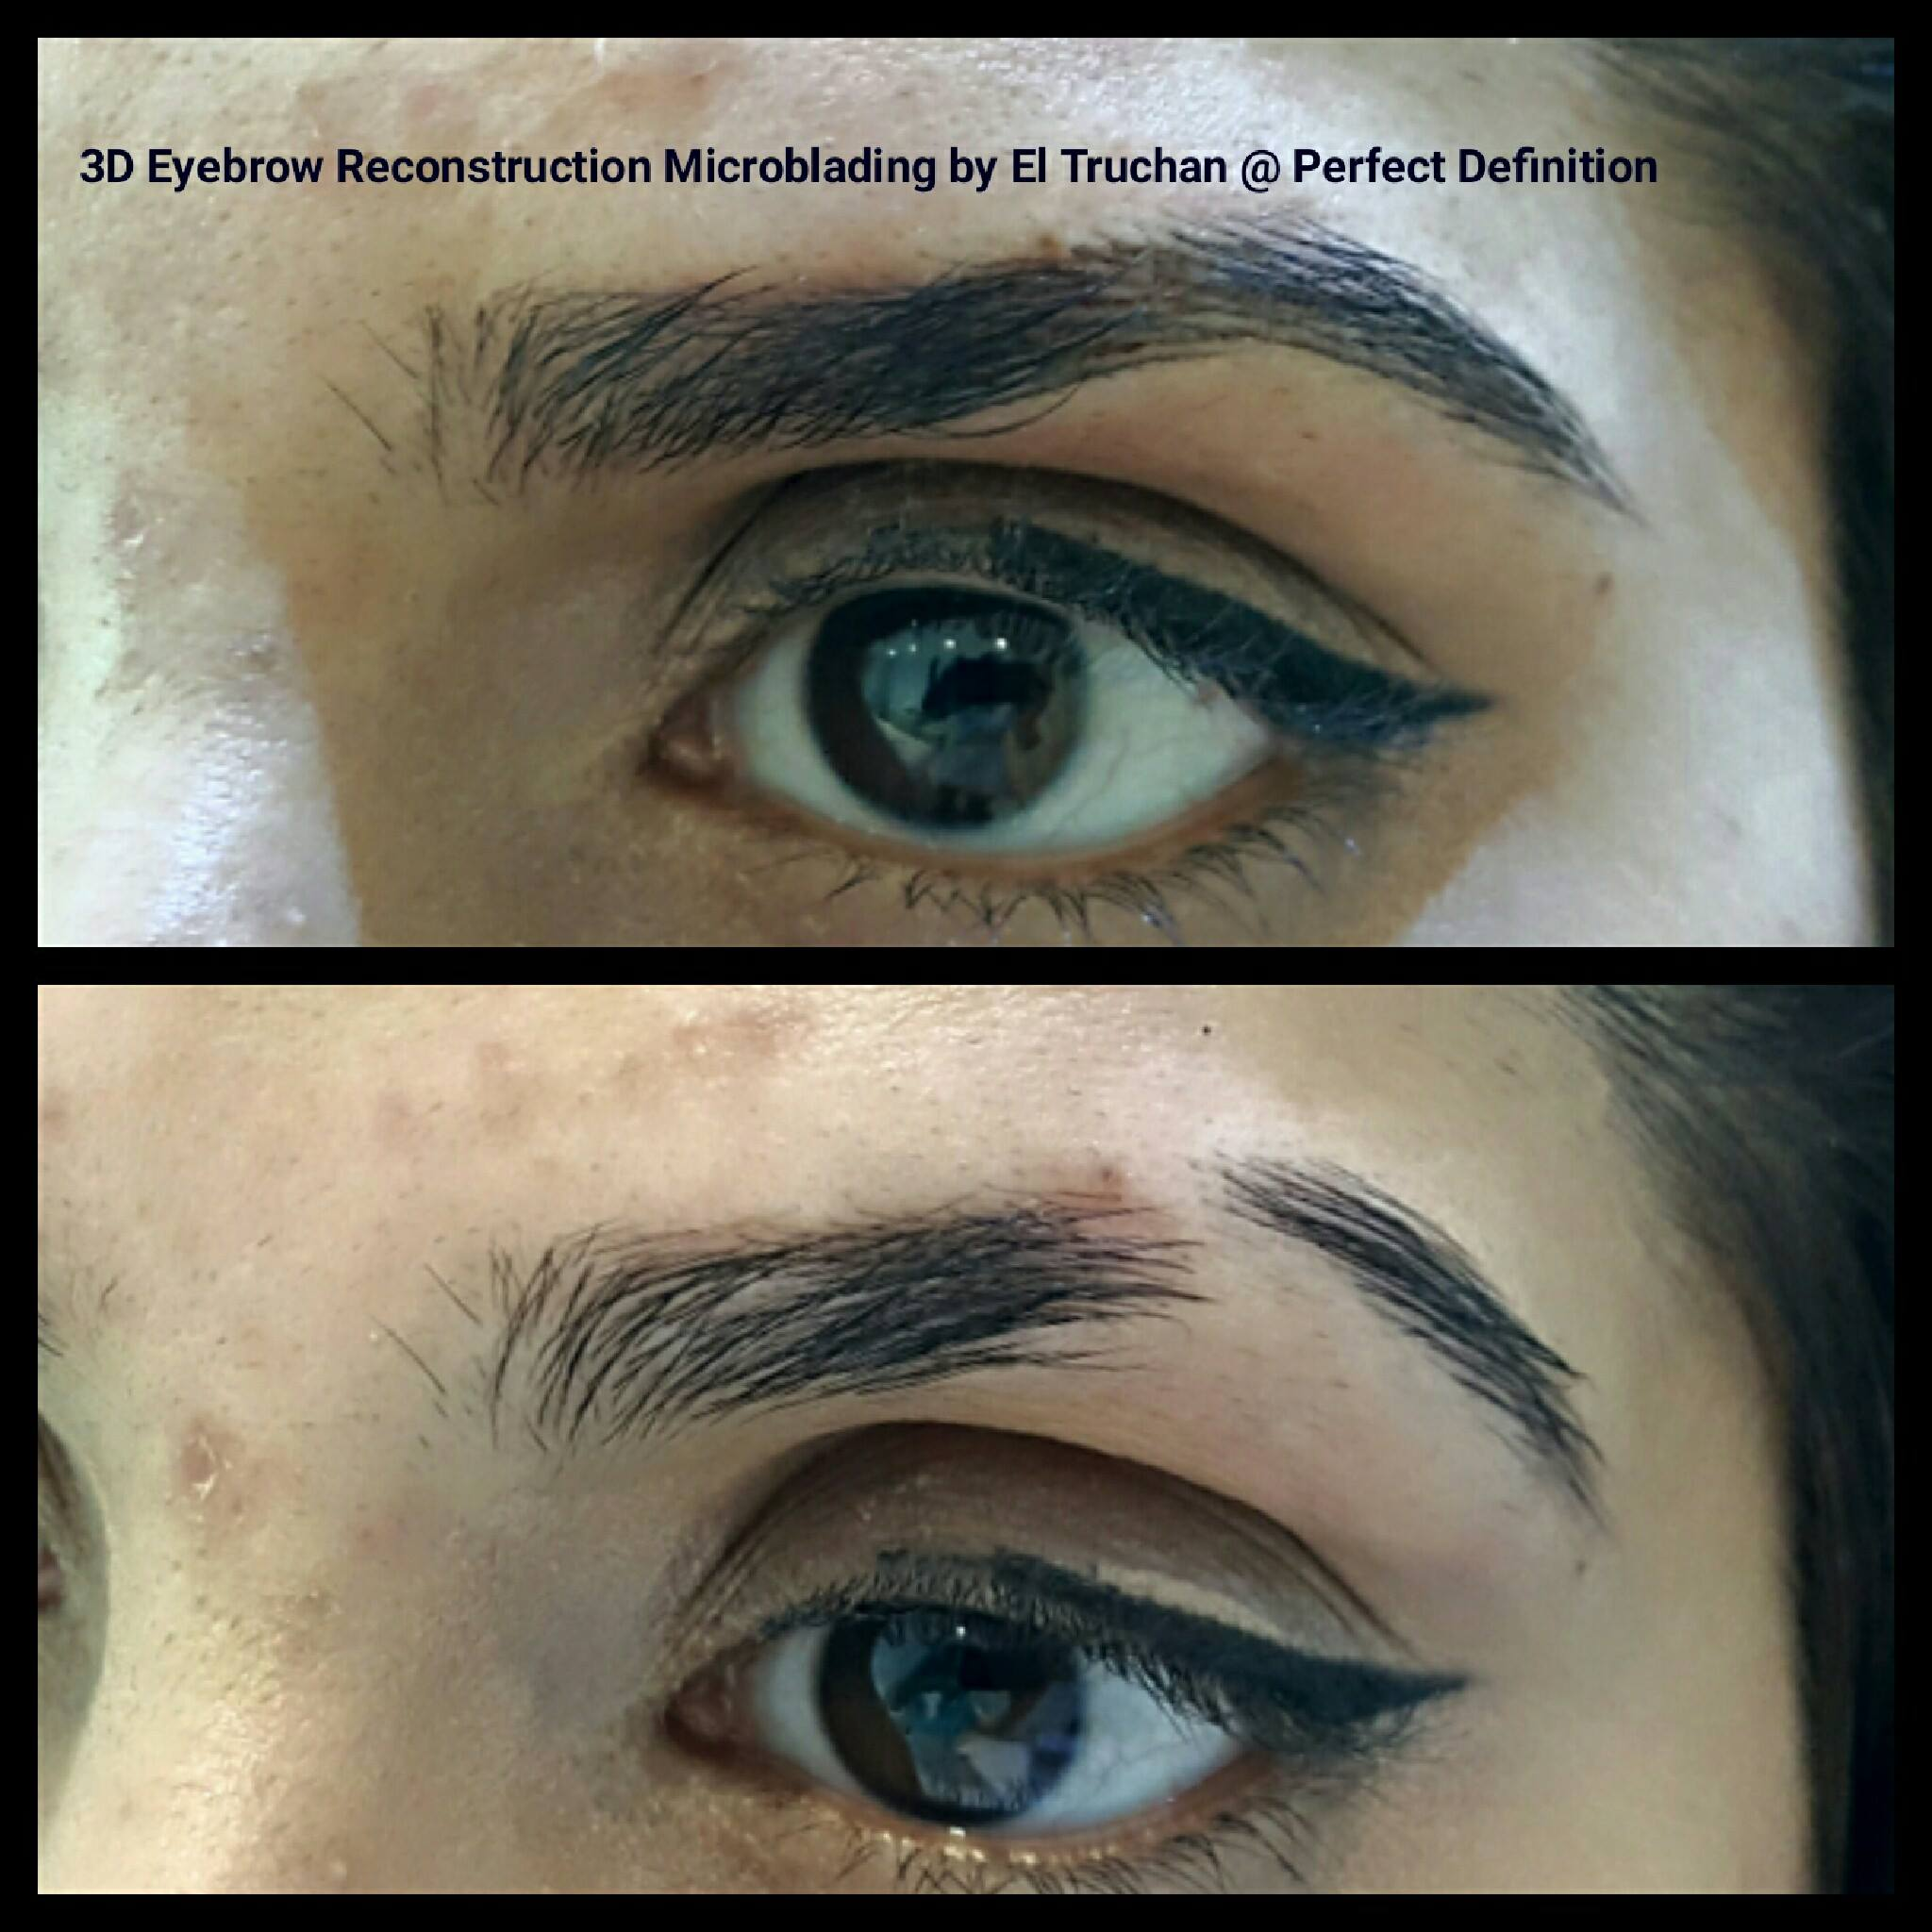 microblading eyebrow reconstruction by El Truchan